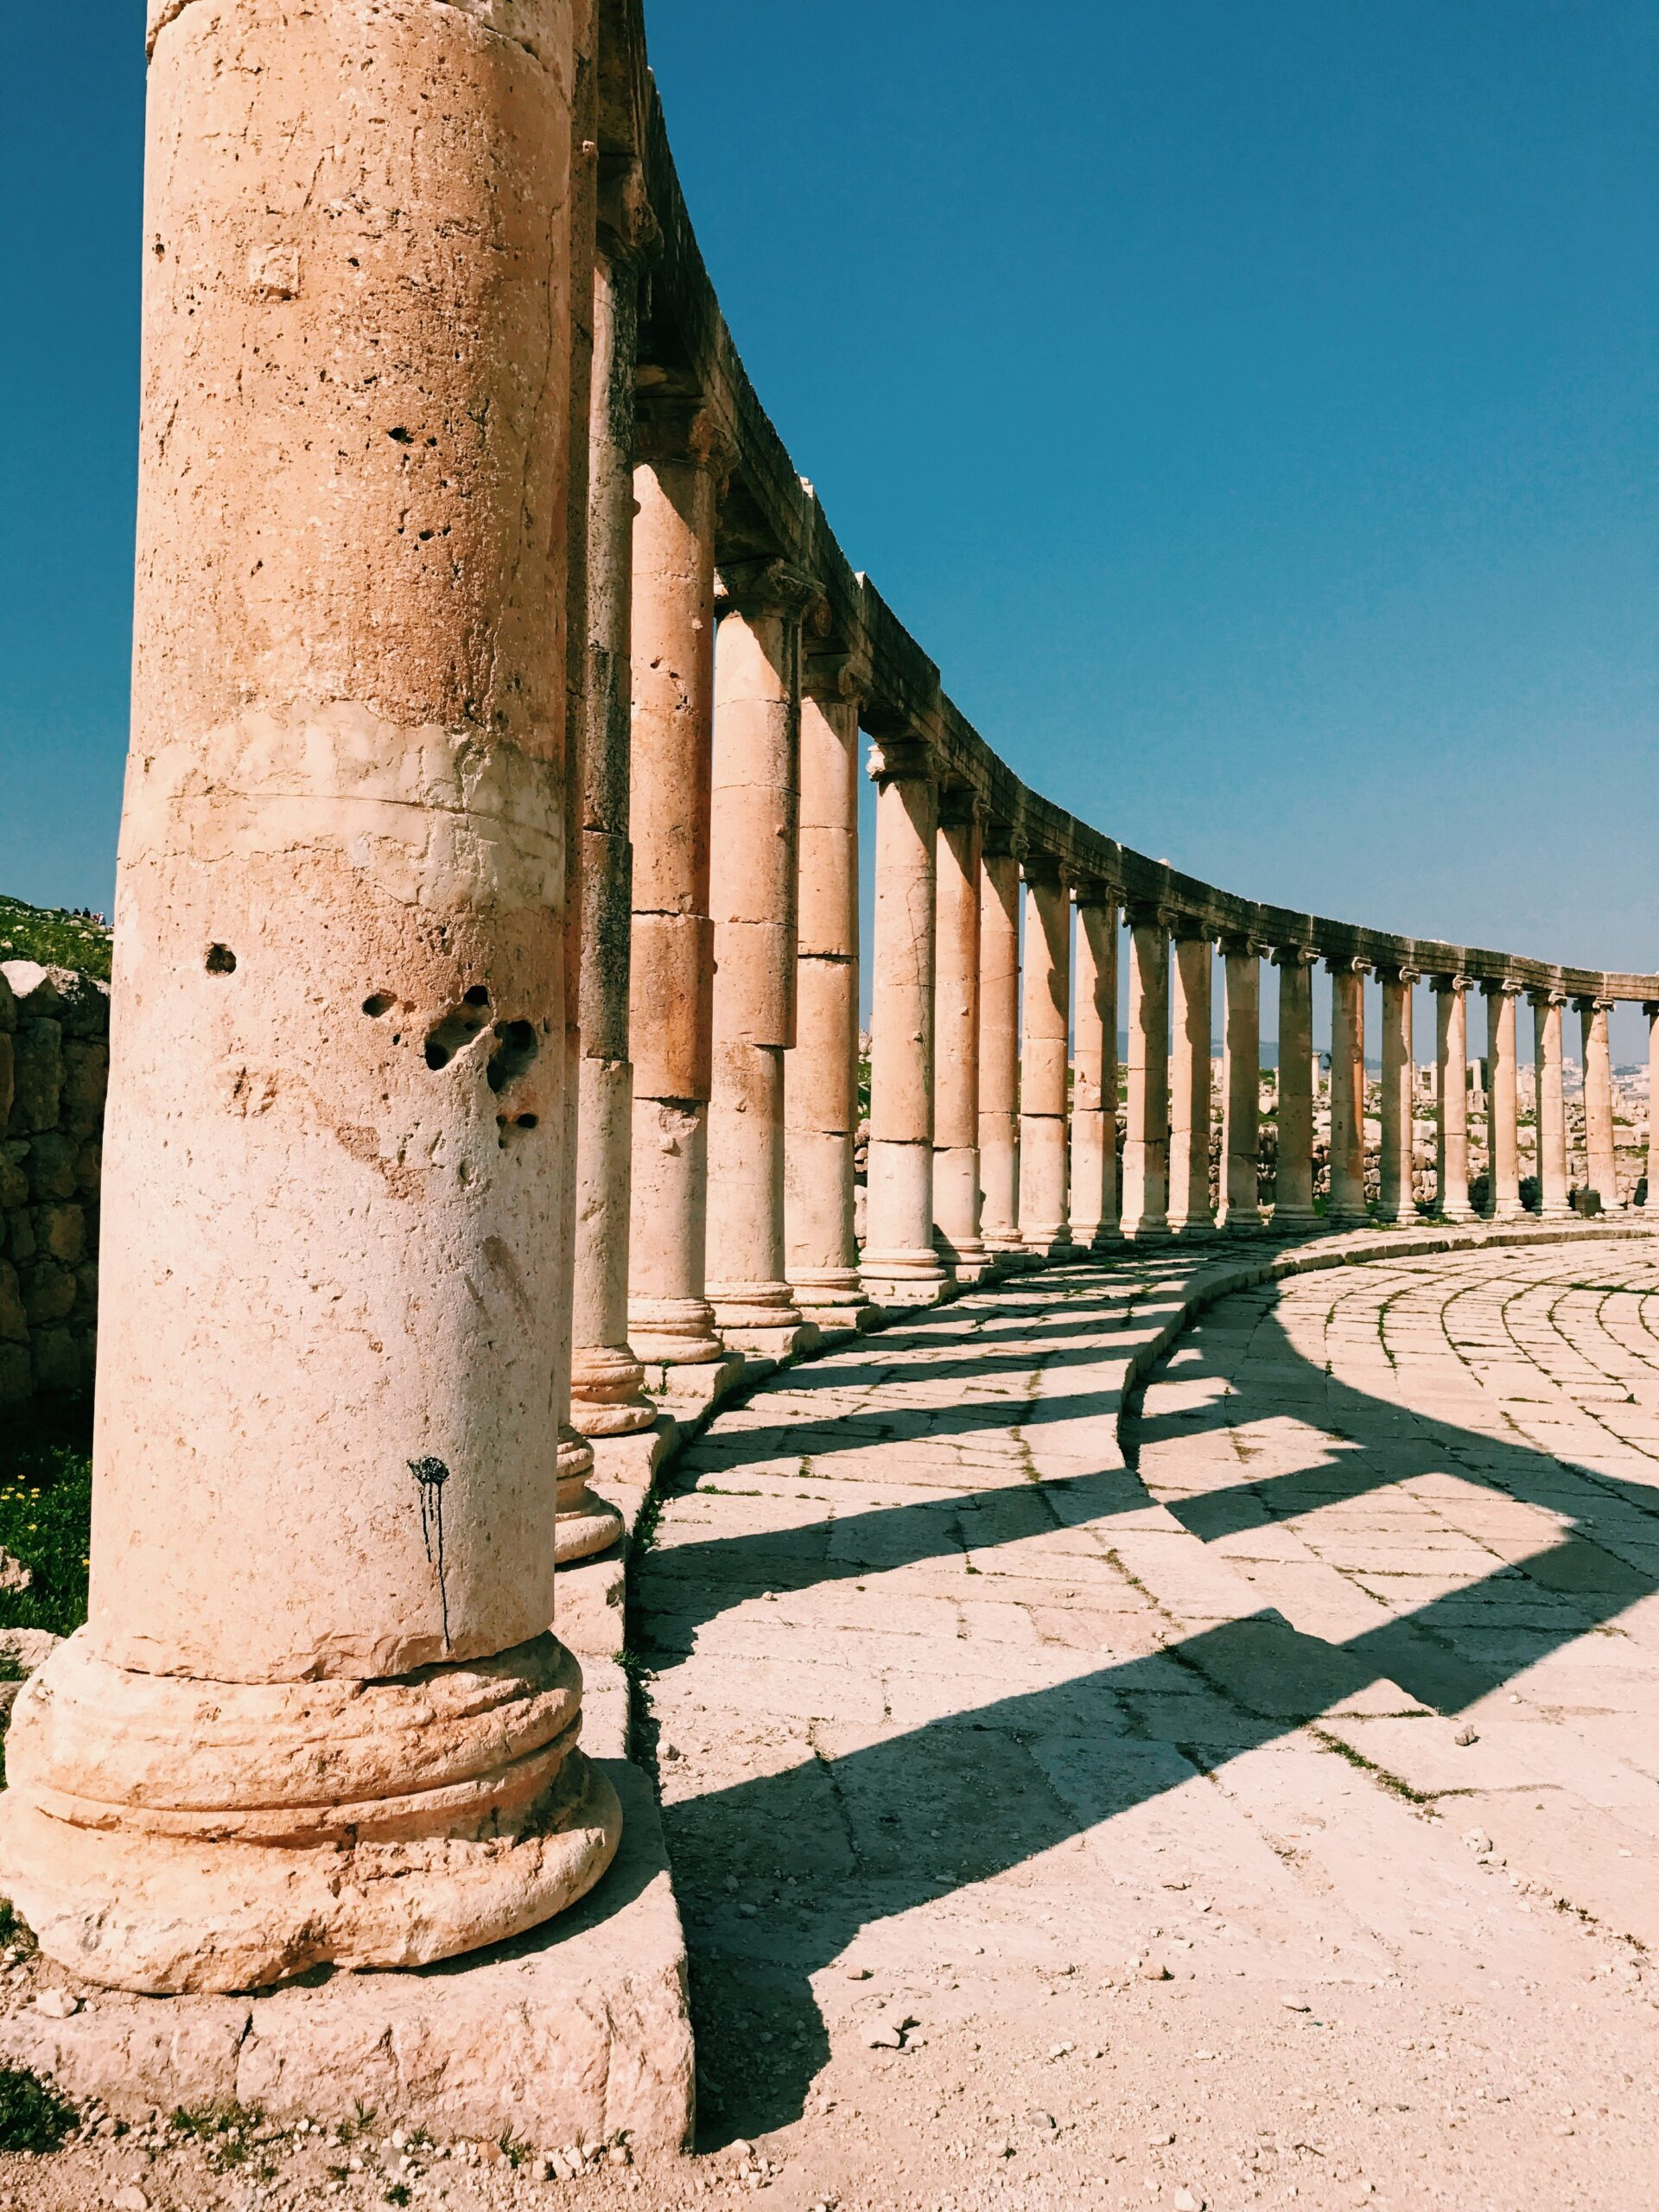 Jerash – one of the best preserved Greco-Roman cities